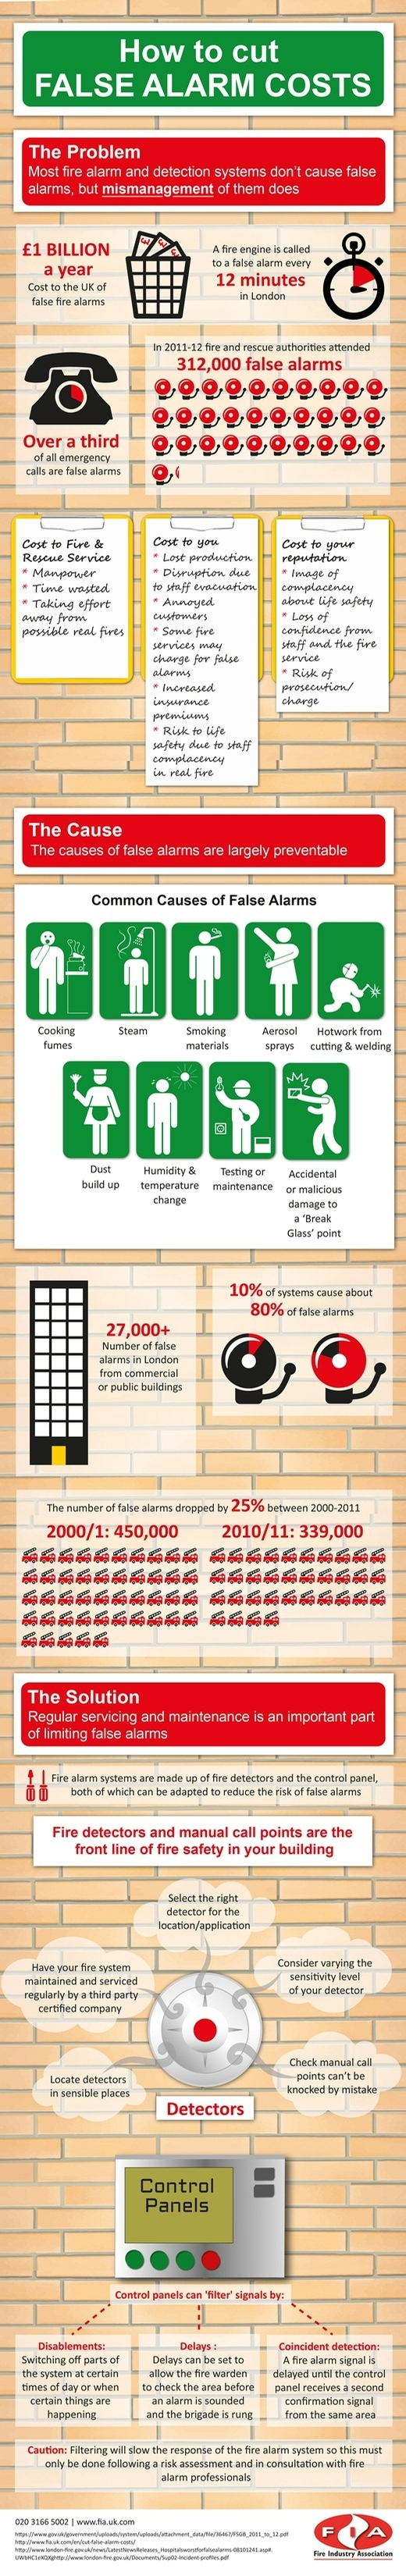 How to reduce false alarms infographic